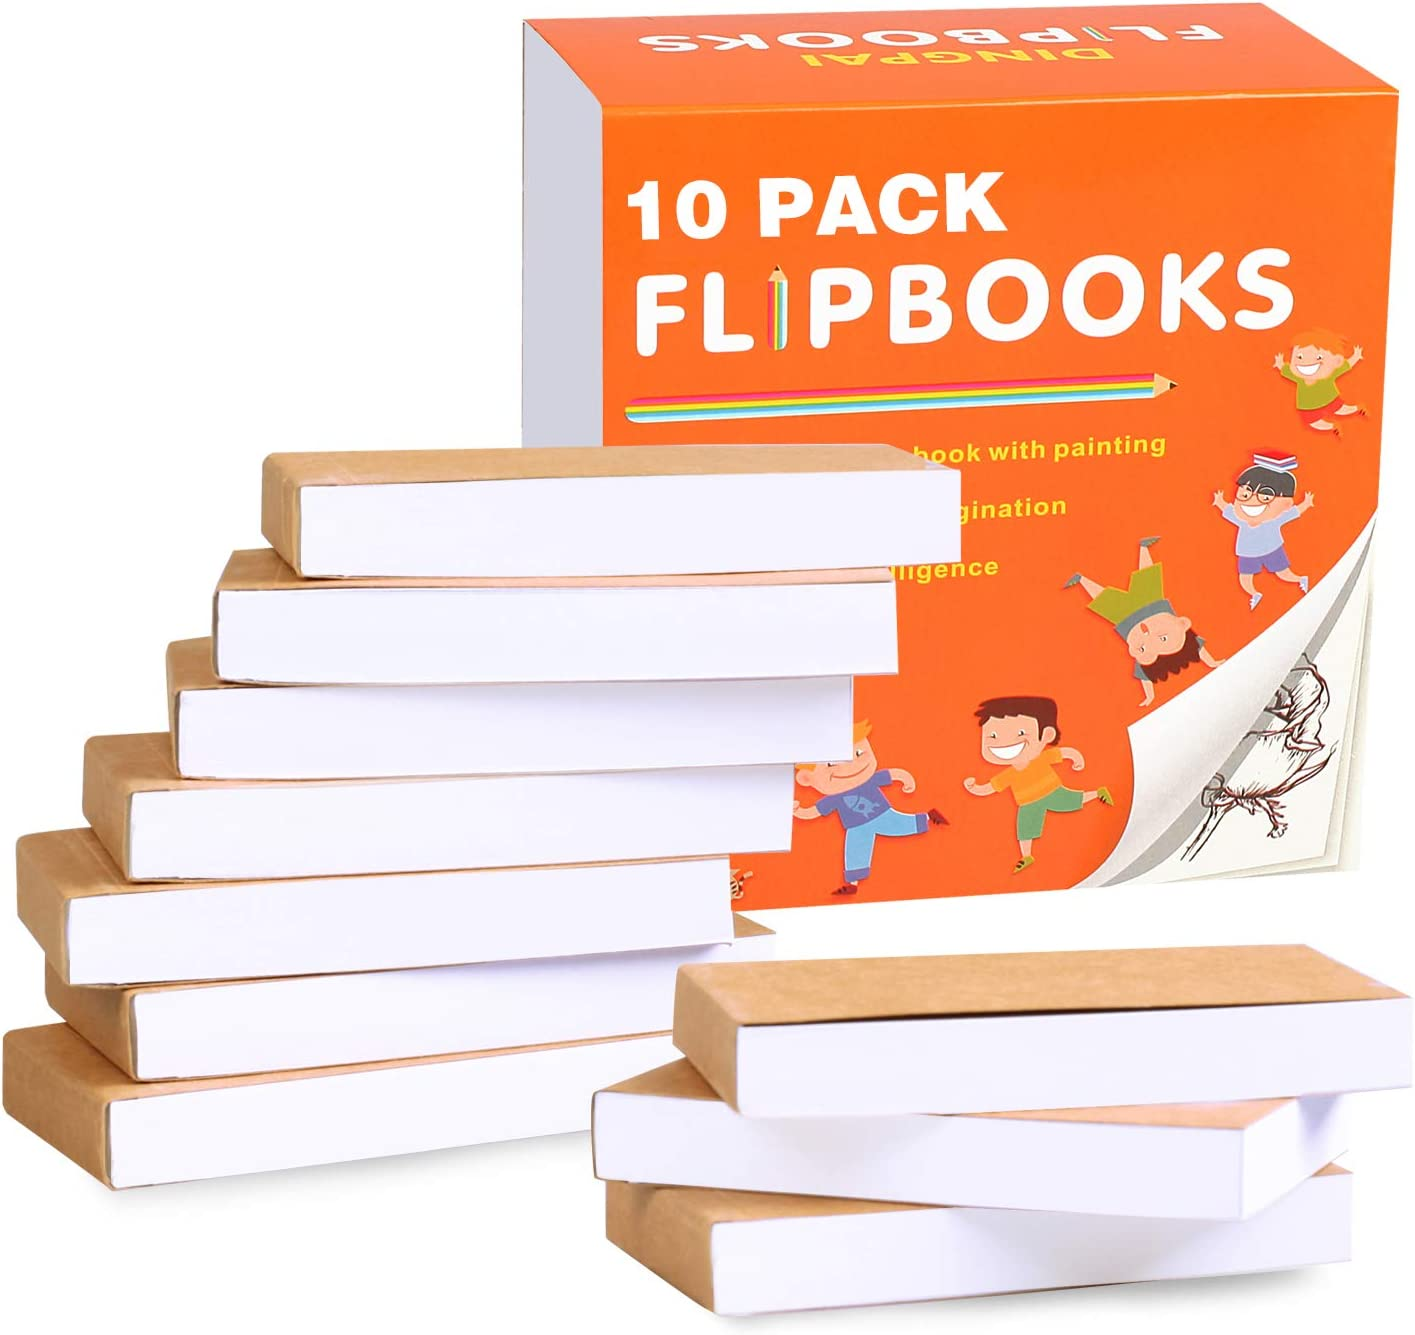 """DINGPAI Blank Flipbooks (Flip Book) 10 Pack for Animation, Sketching, and Cartoon Creation, 4.5"""" x 2.5"""", 160 Pages (80 Sheets), No Bleed Drawing Paper with Sewn Binding, Creative Craft for Kids: Arts, Crafts & Sewing"""